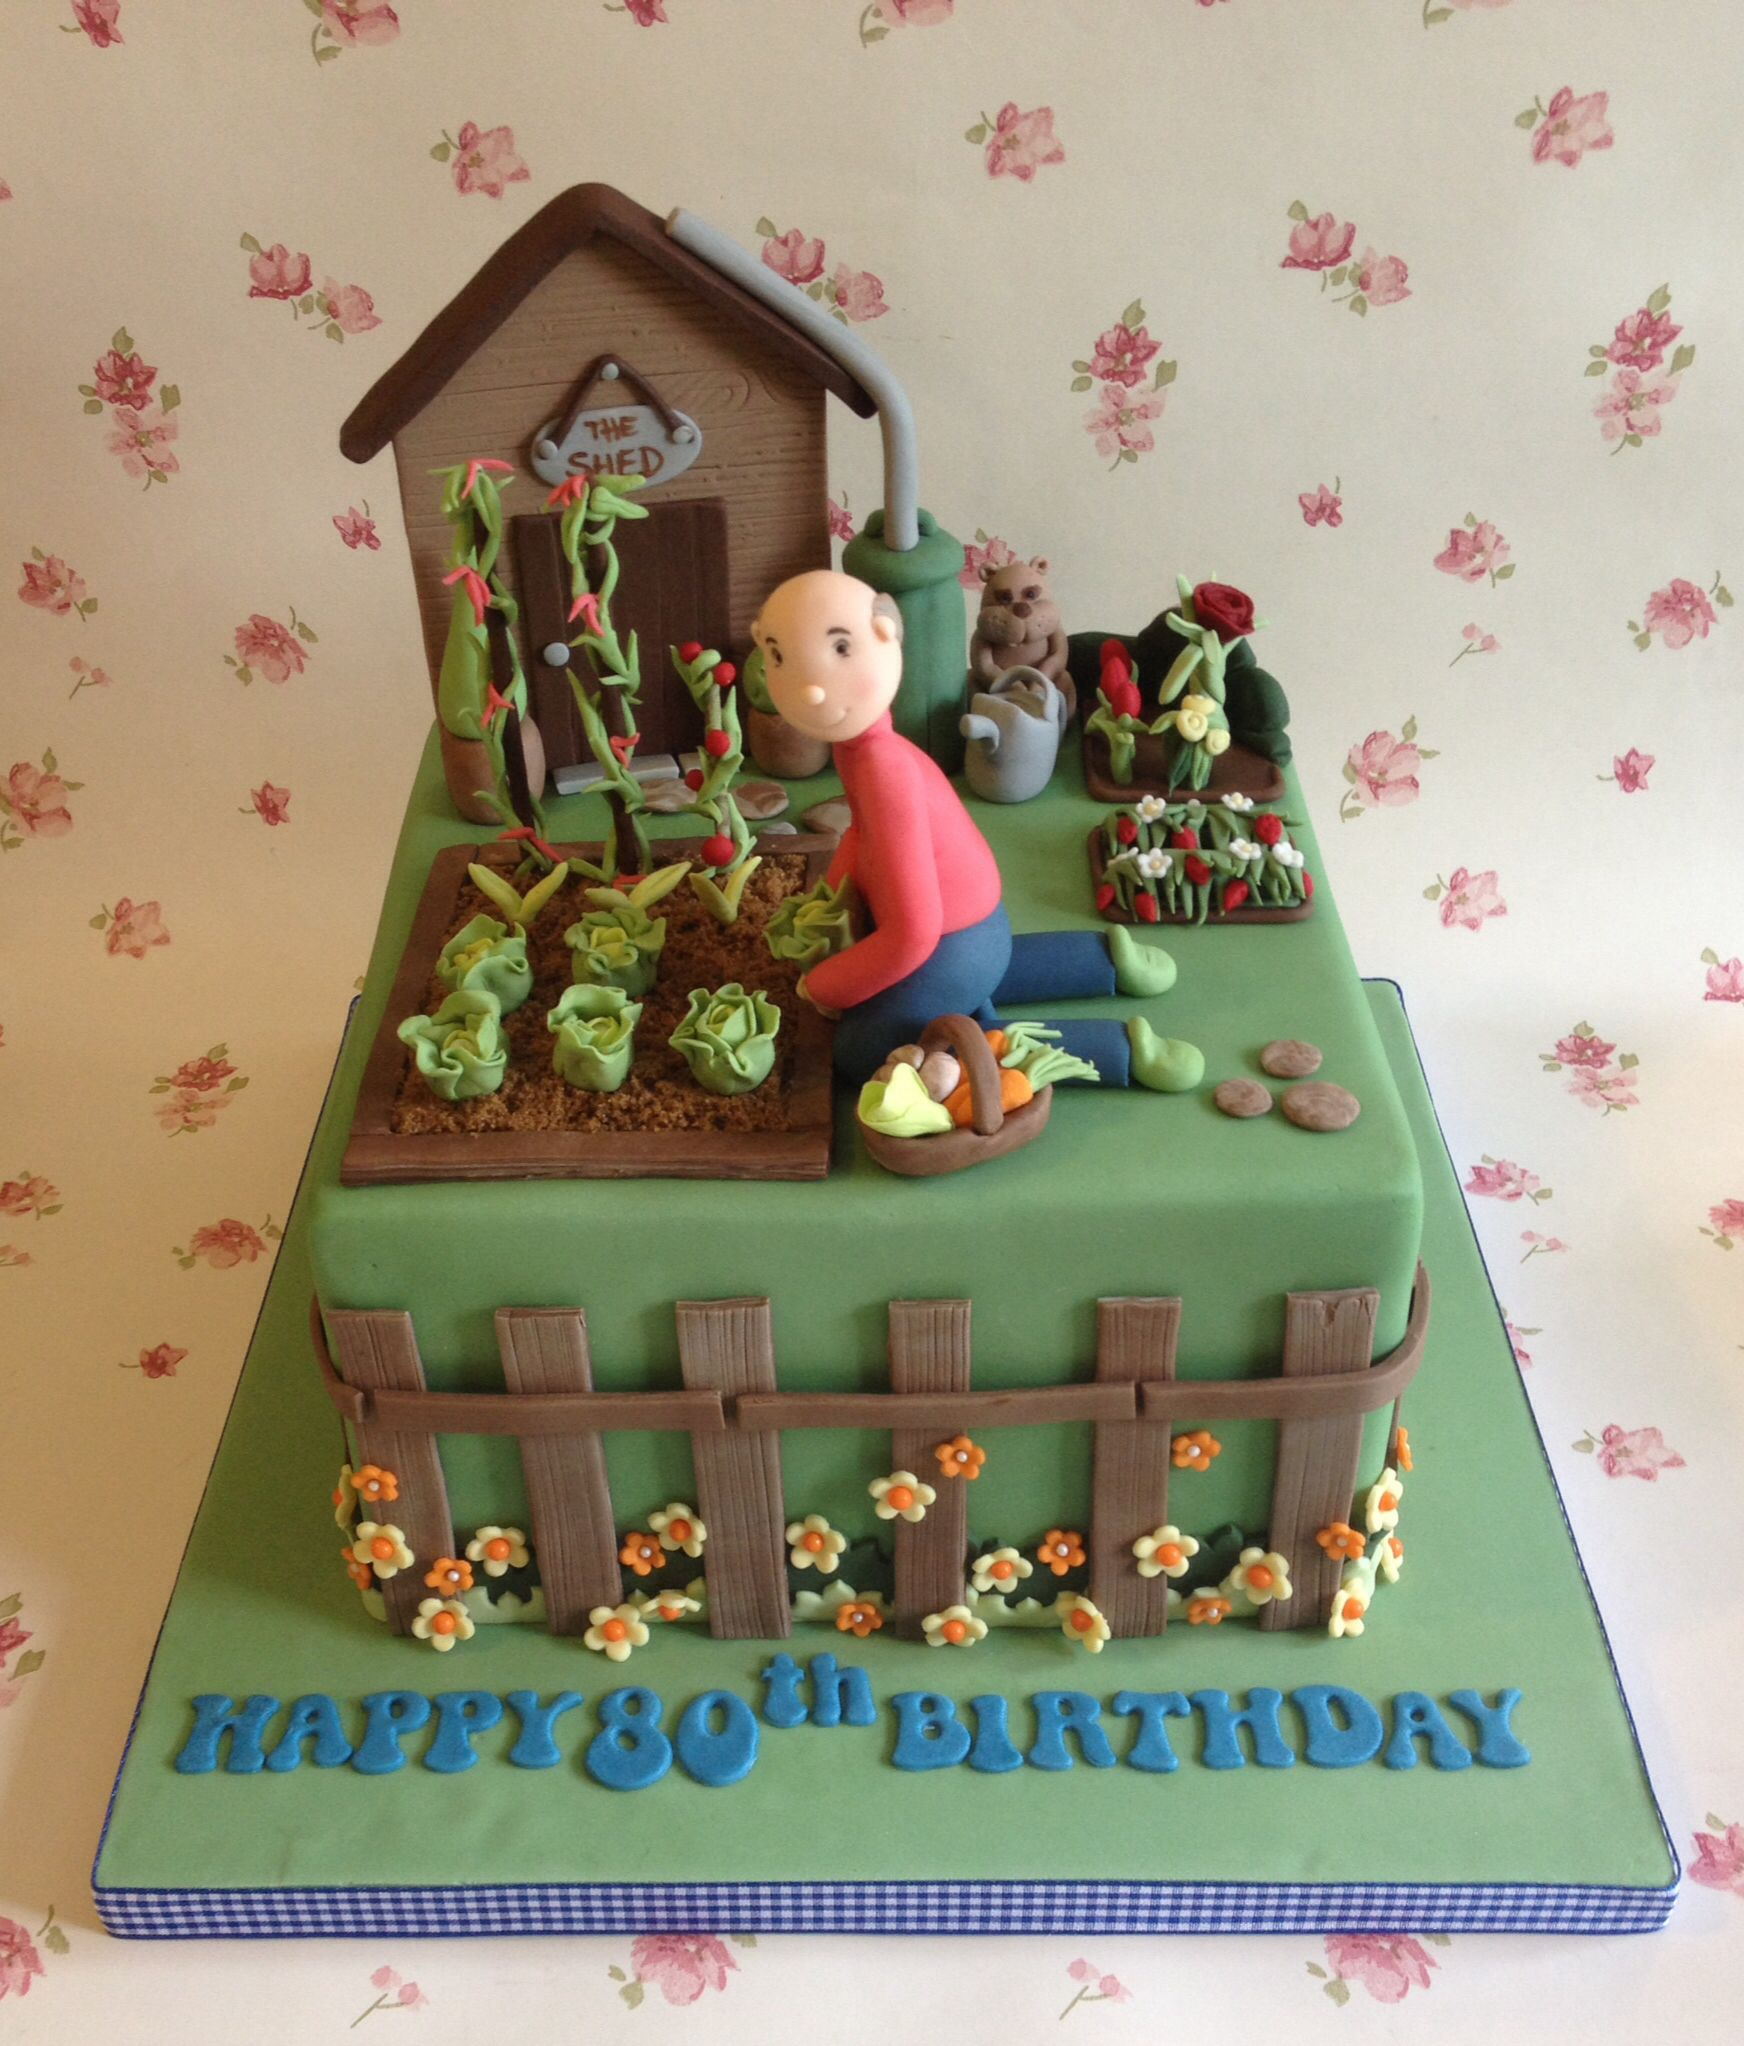 Allotment theme cake | cakes | Pinterest | Allotment, Cake and ...